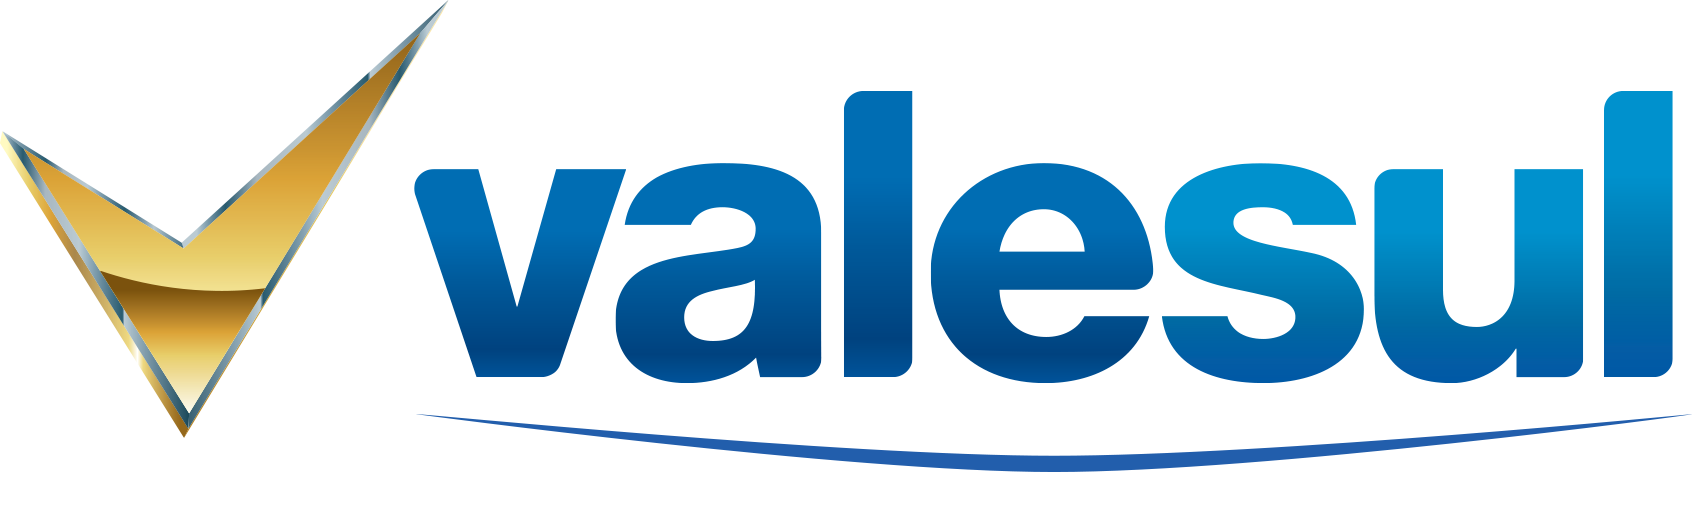 LOGO_VALESUL.png